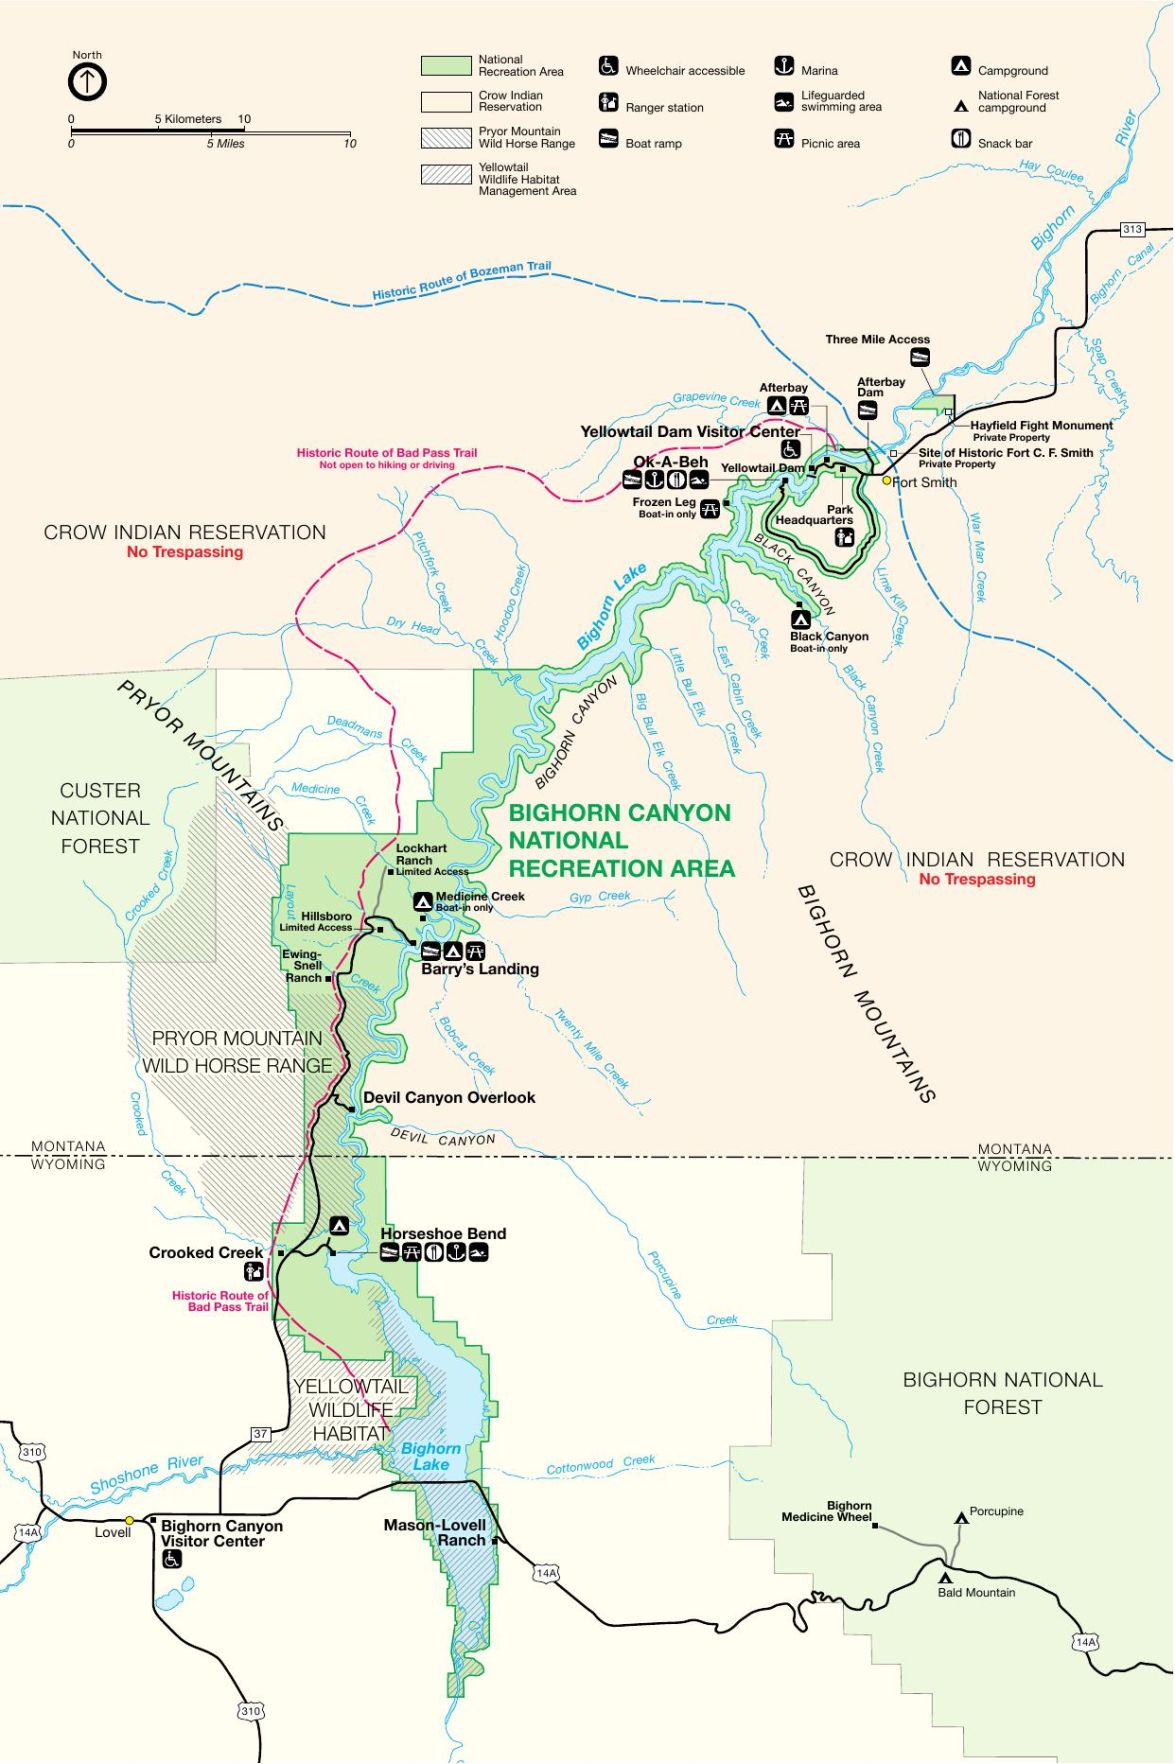 Bighorn Canyon National Recreation Area map | Montana News ...